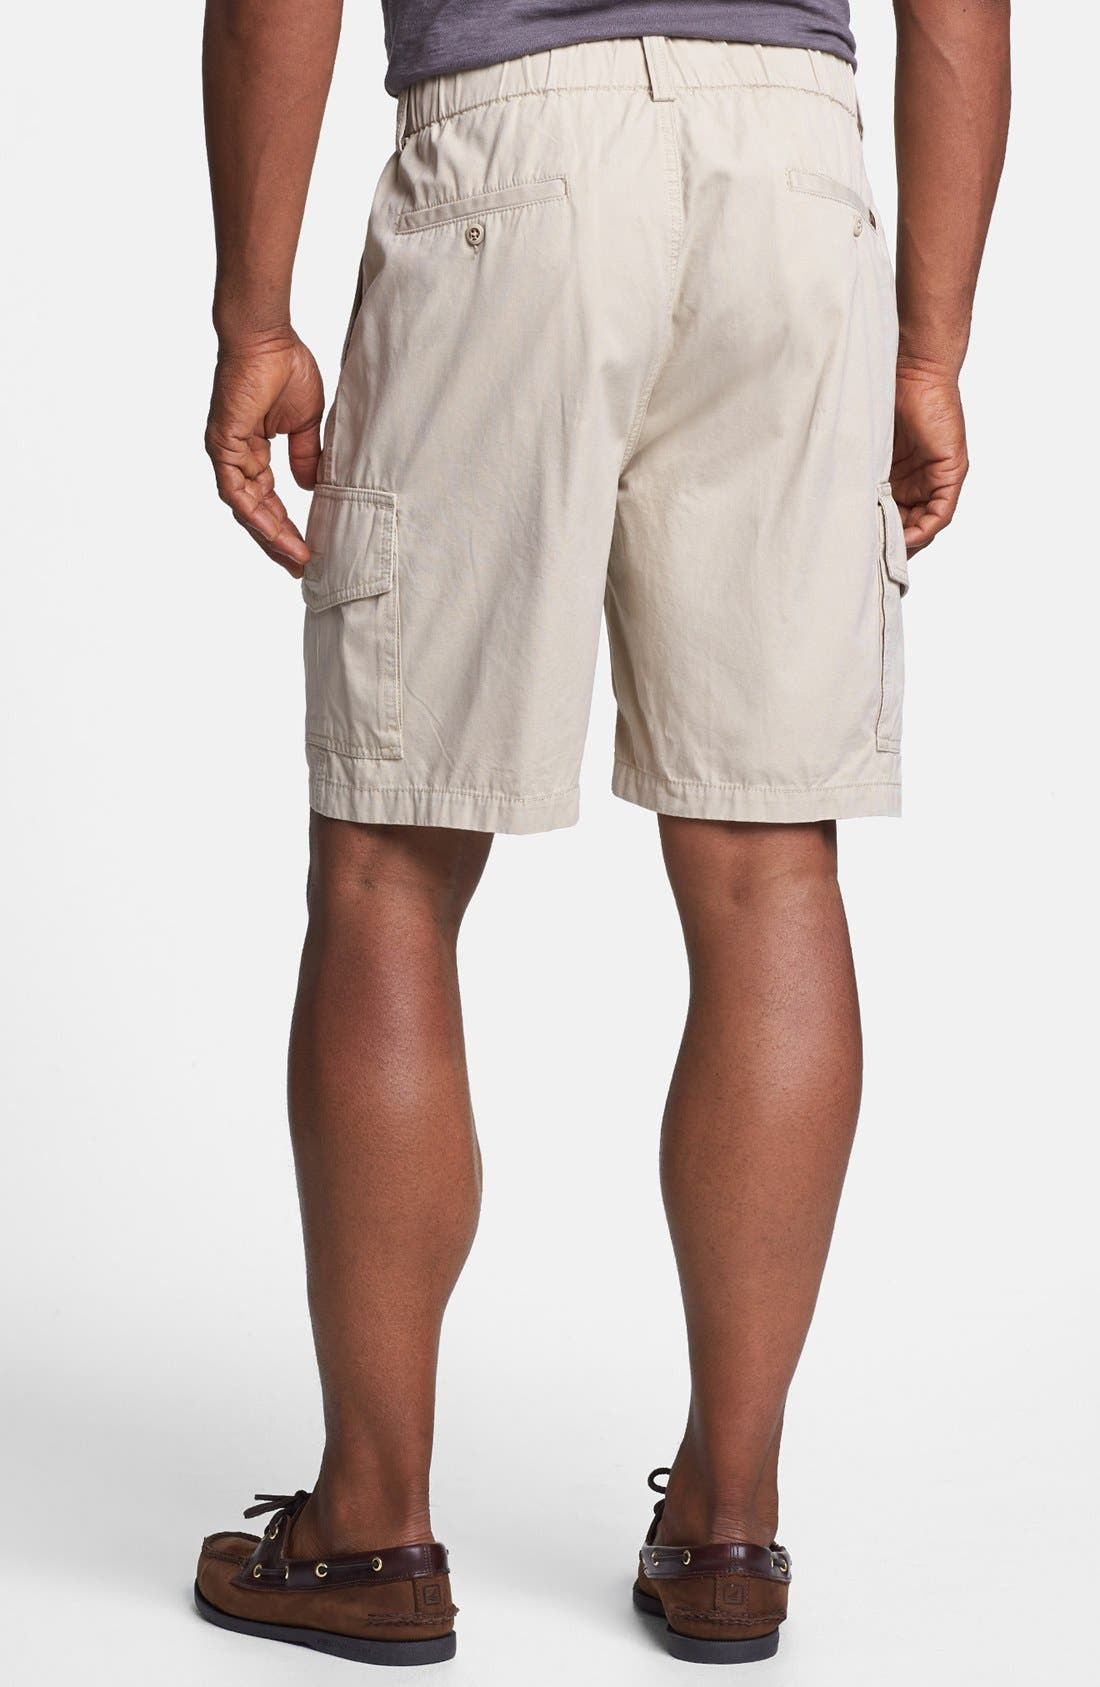 TOMMY BAHAMA,                             Relax 'Survivor' Cargo Shorts,                             Alternate thumbnail 2, color,                             SXL